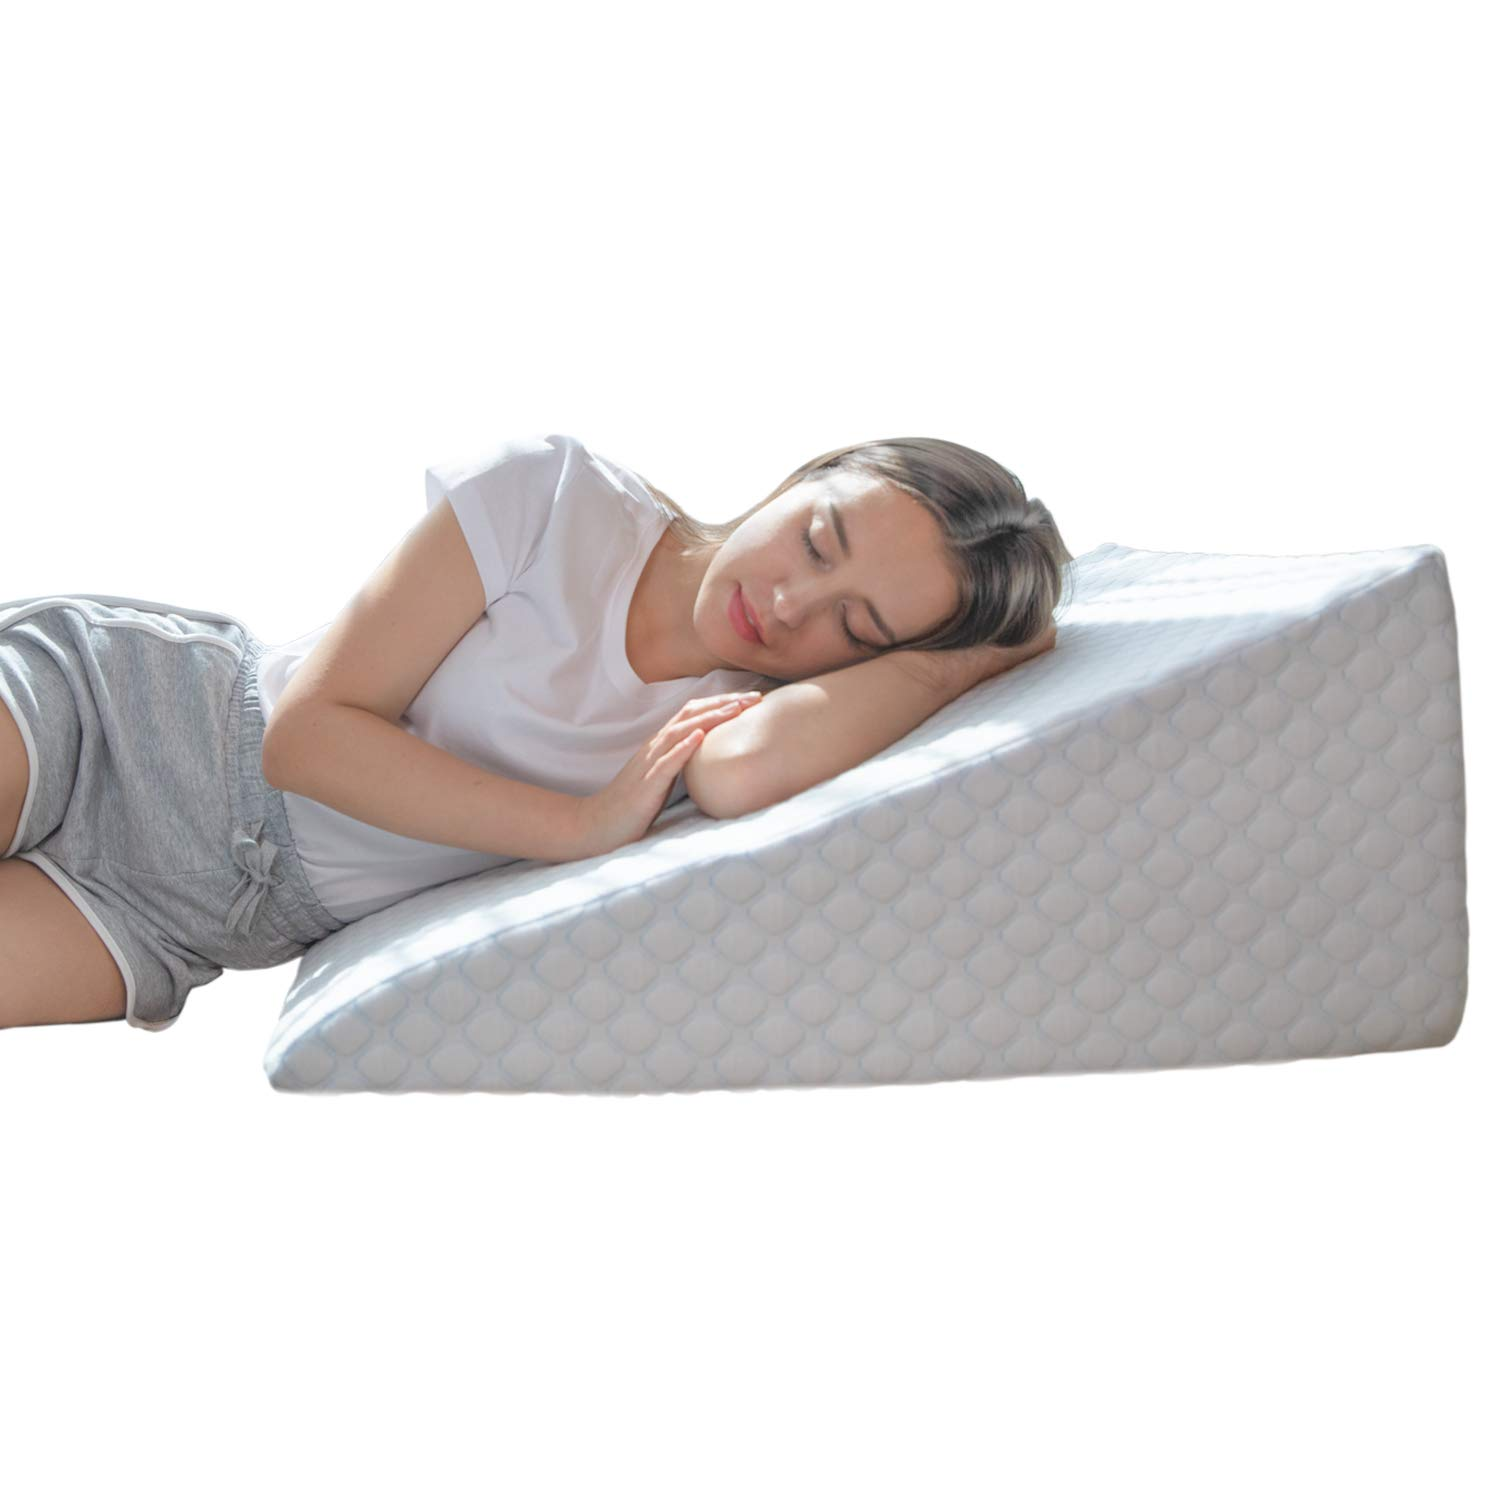 Bed Wedge Pillow with 1.5 Inch Memory Foam Top, (24 x 28 x 12 Inches), Removable and Washable Cover, Perfect for Sleeping or Reading, Leg Elevation, Back Support, LENORA 12 Inch Wedge by Lenora